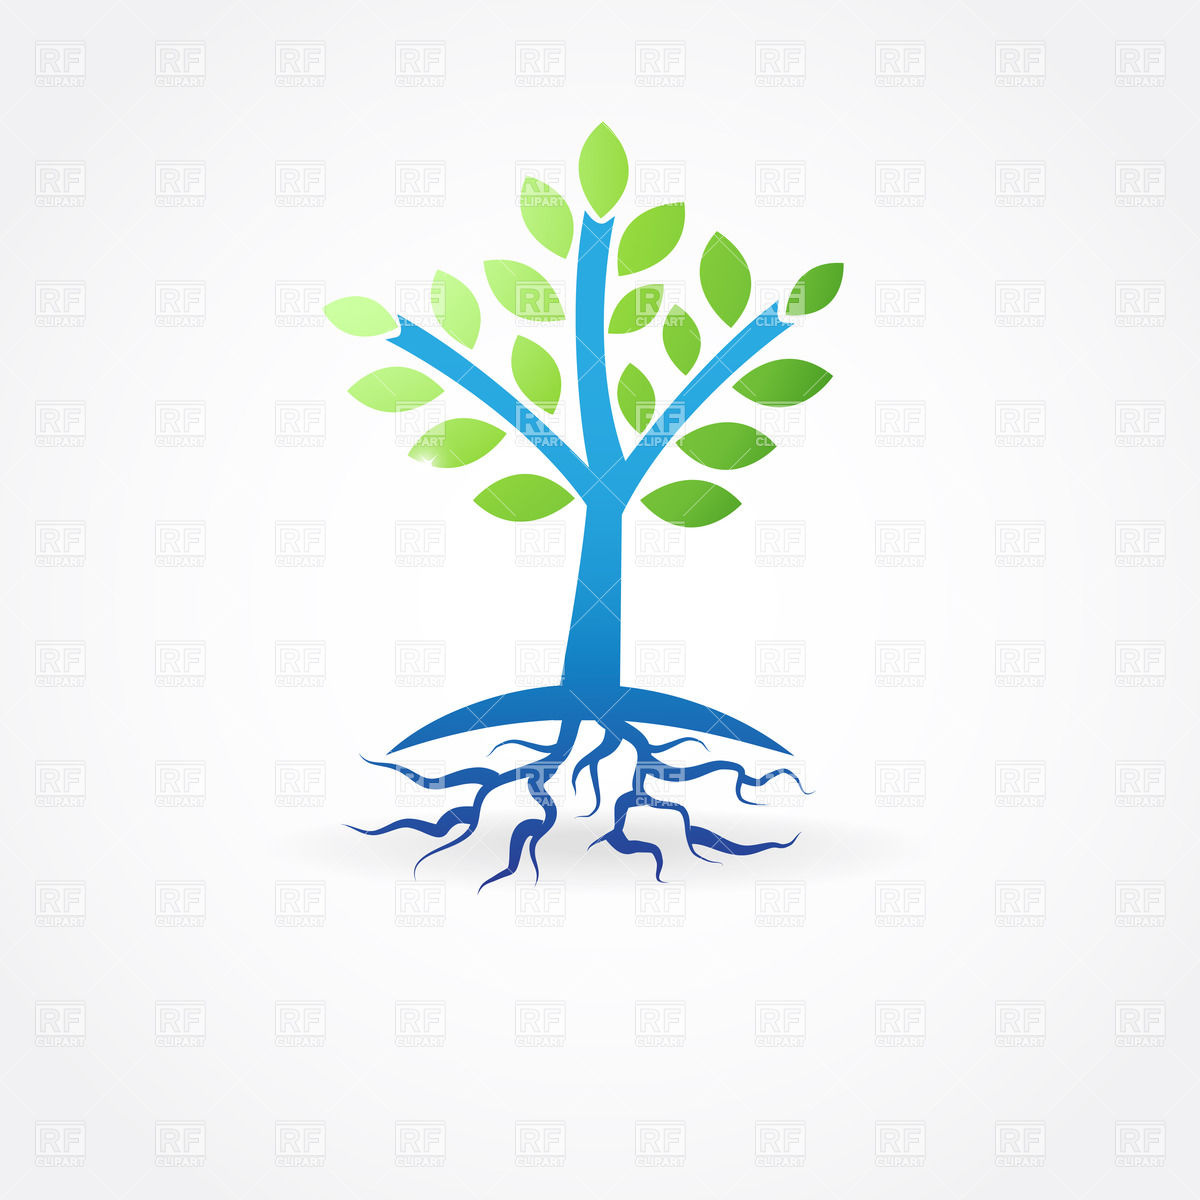 Simple spring tree with roots Vector Image #22061.